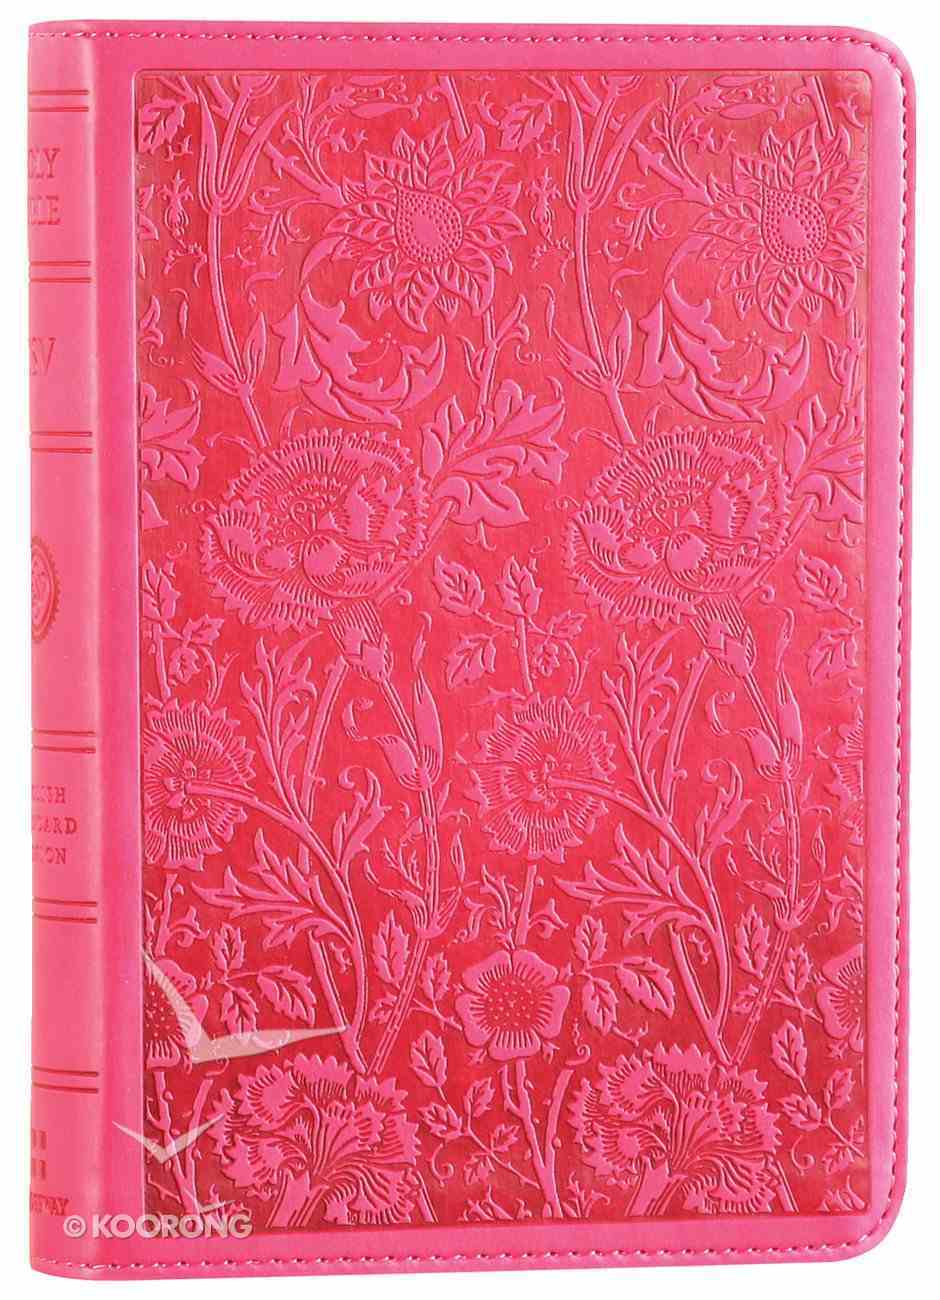 ESV Large Print Compact Bible Berry Floral Design (Red Letter Edition) Imitation Leather